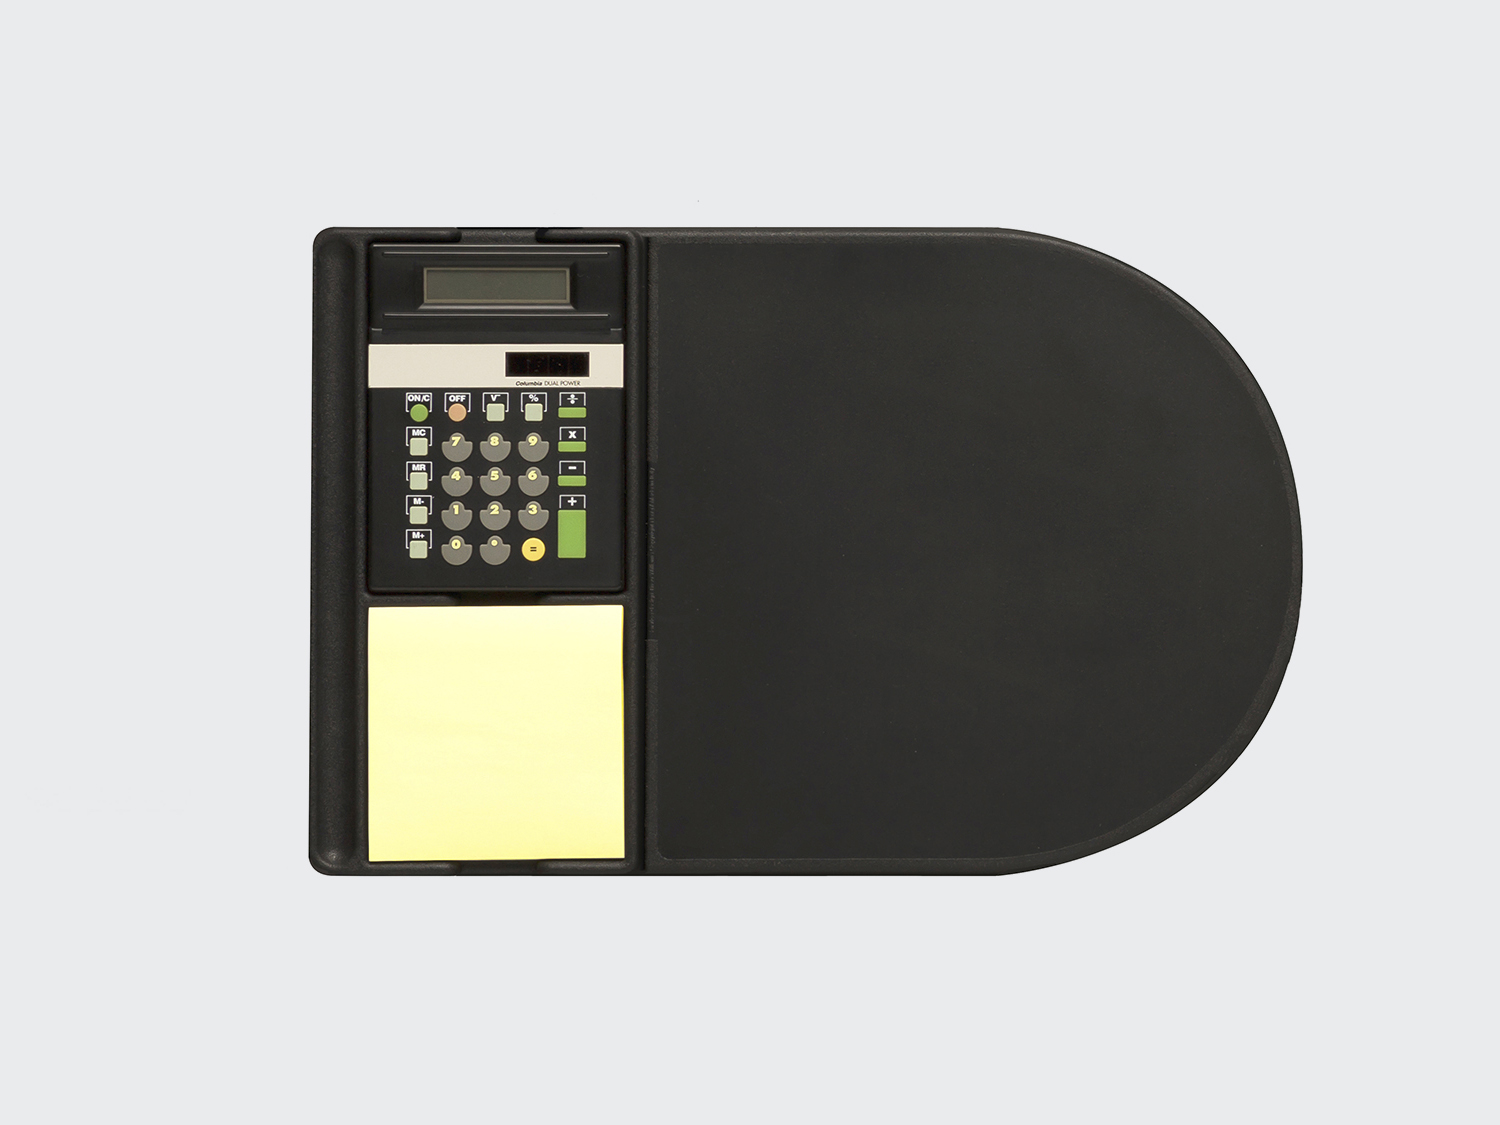 Service Mouse Pad. Soft-touch rubber mouse pad with removable notes and Ettore Sottsass designed calculator. For Nava, 1994. DESIGN PLUS+ 1995